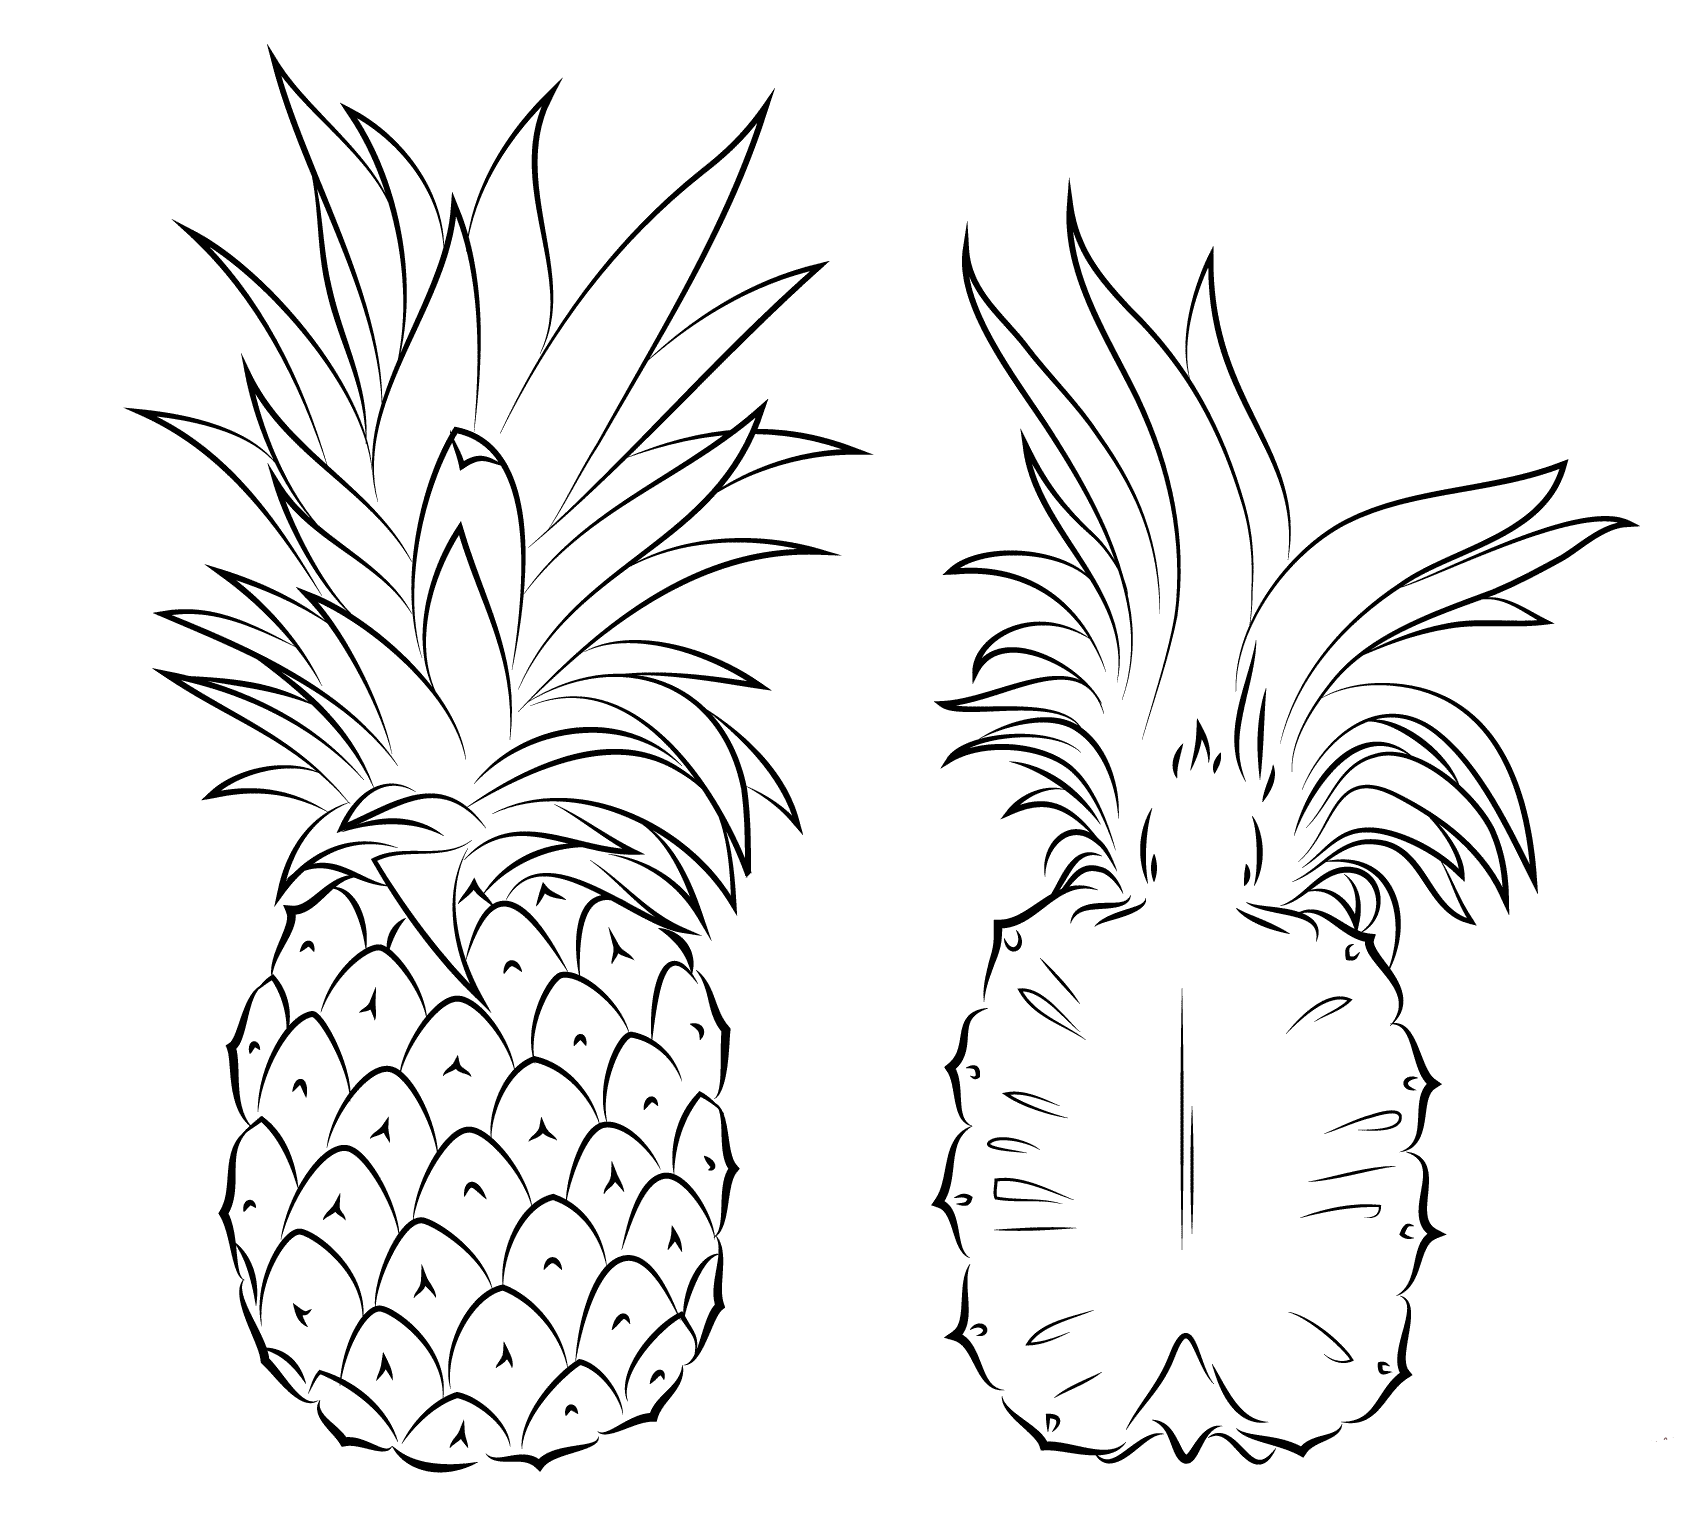 coloring pictures of pineapple pineapple coloring pages to download and print for free pineapple coloring of pictures